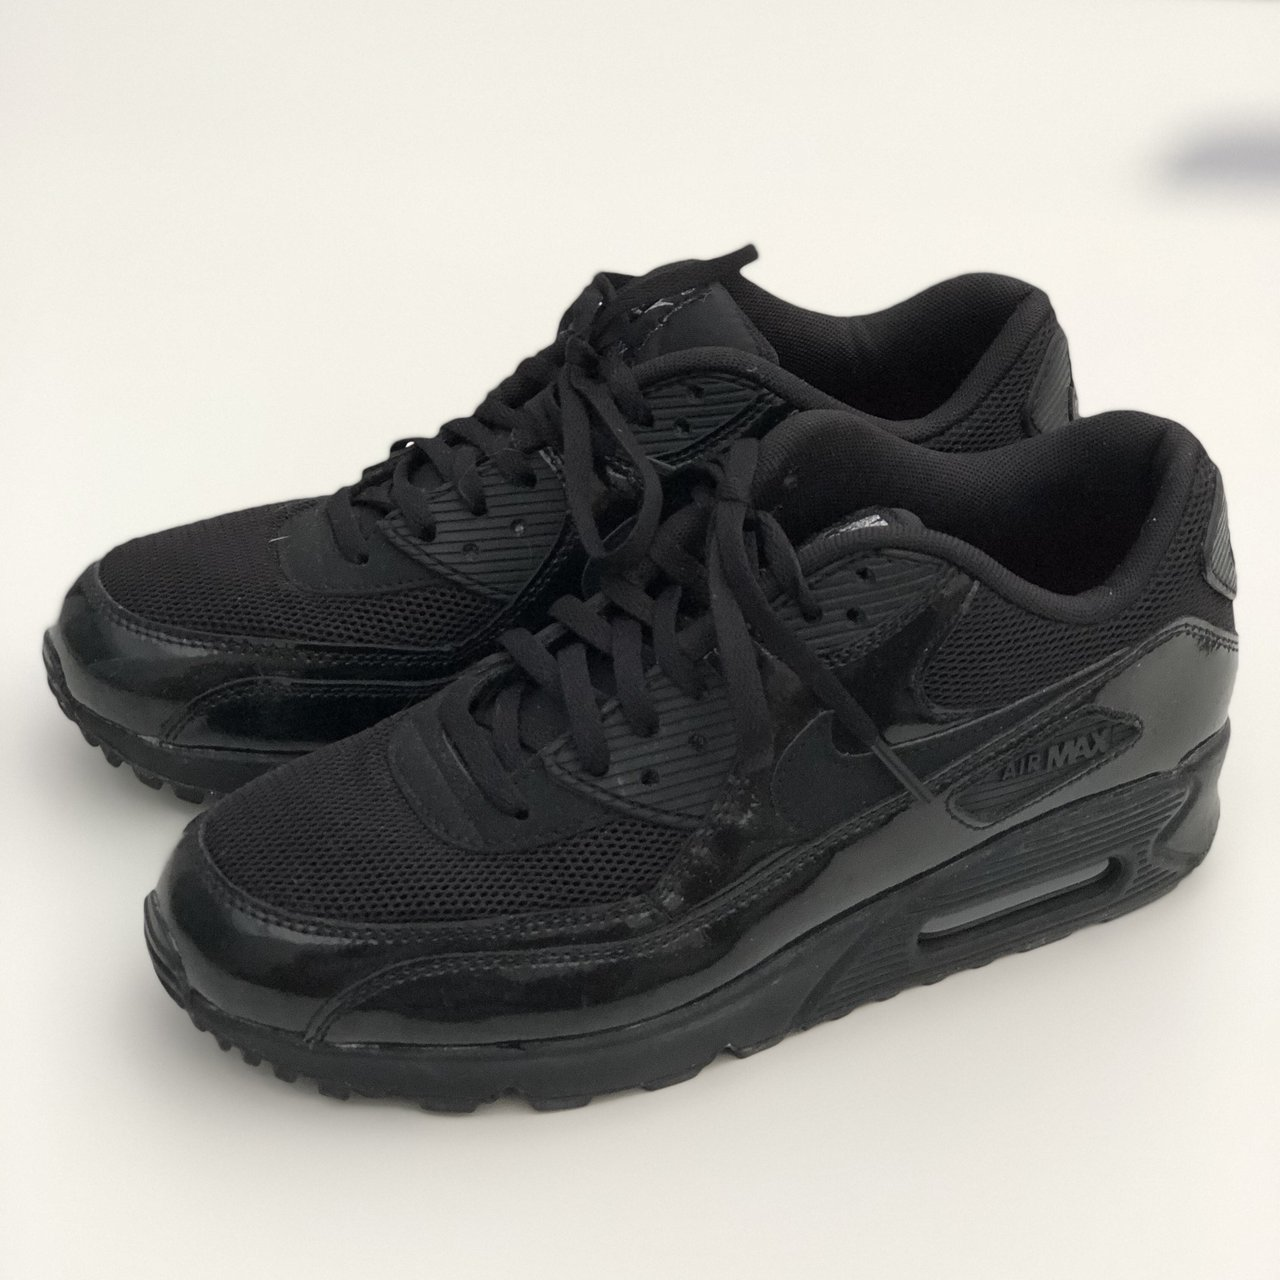 best sneakers ca2f4 787c9  hollyclements91. 9 months ago. Bedford, United Kingdom. Nike Air Max 90 ...